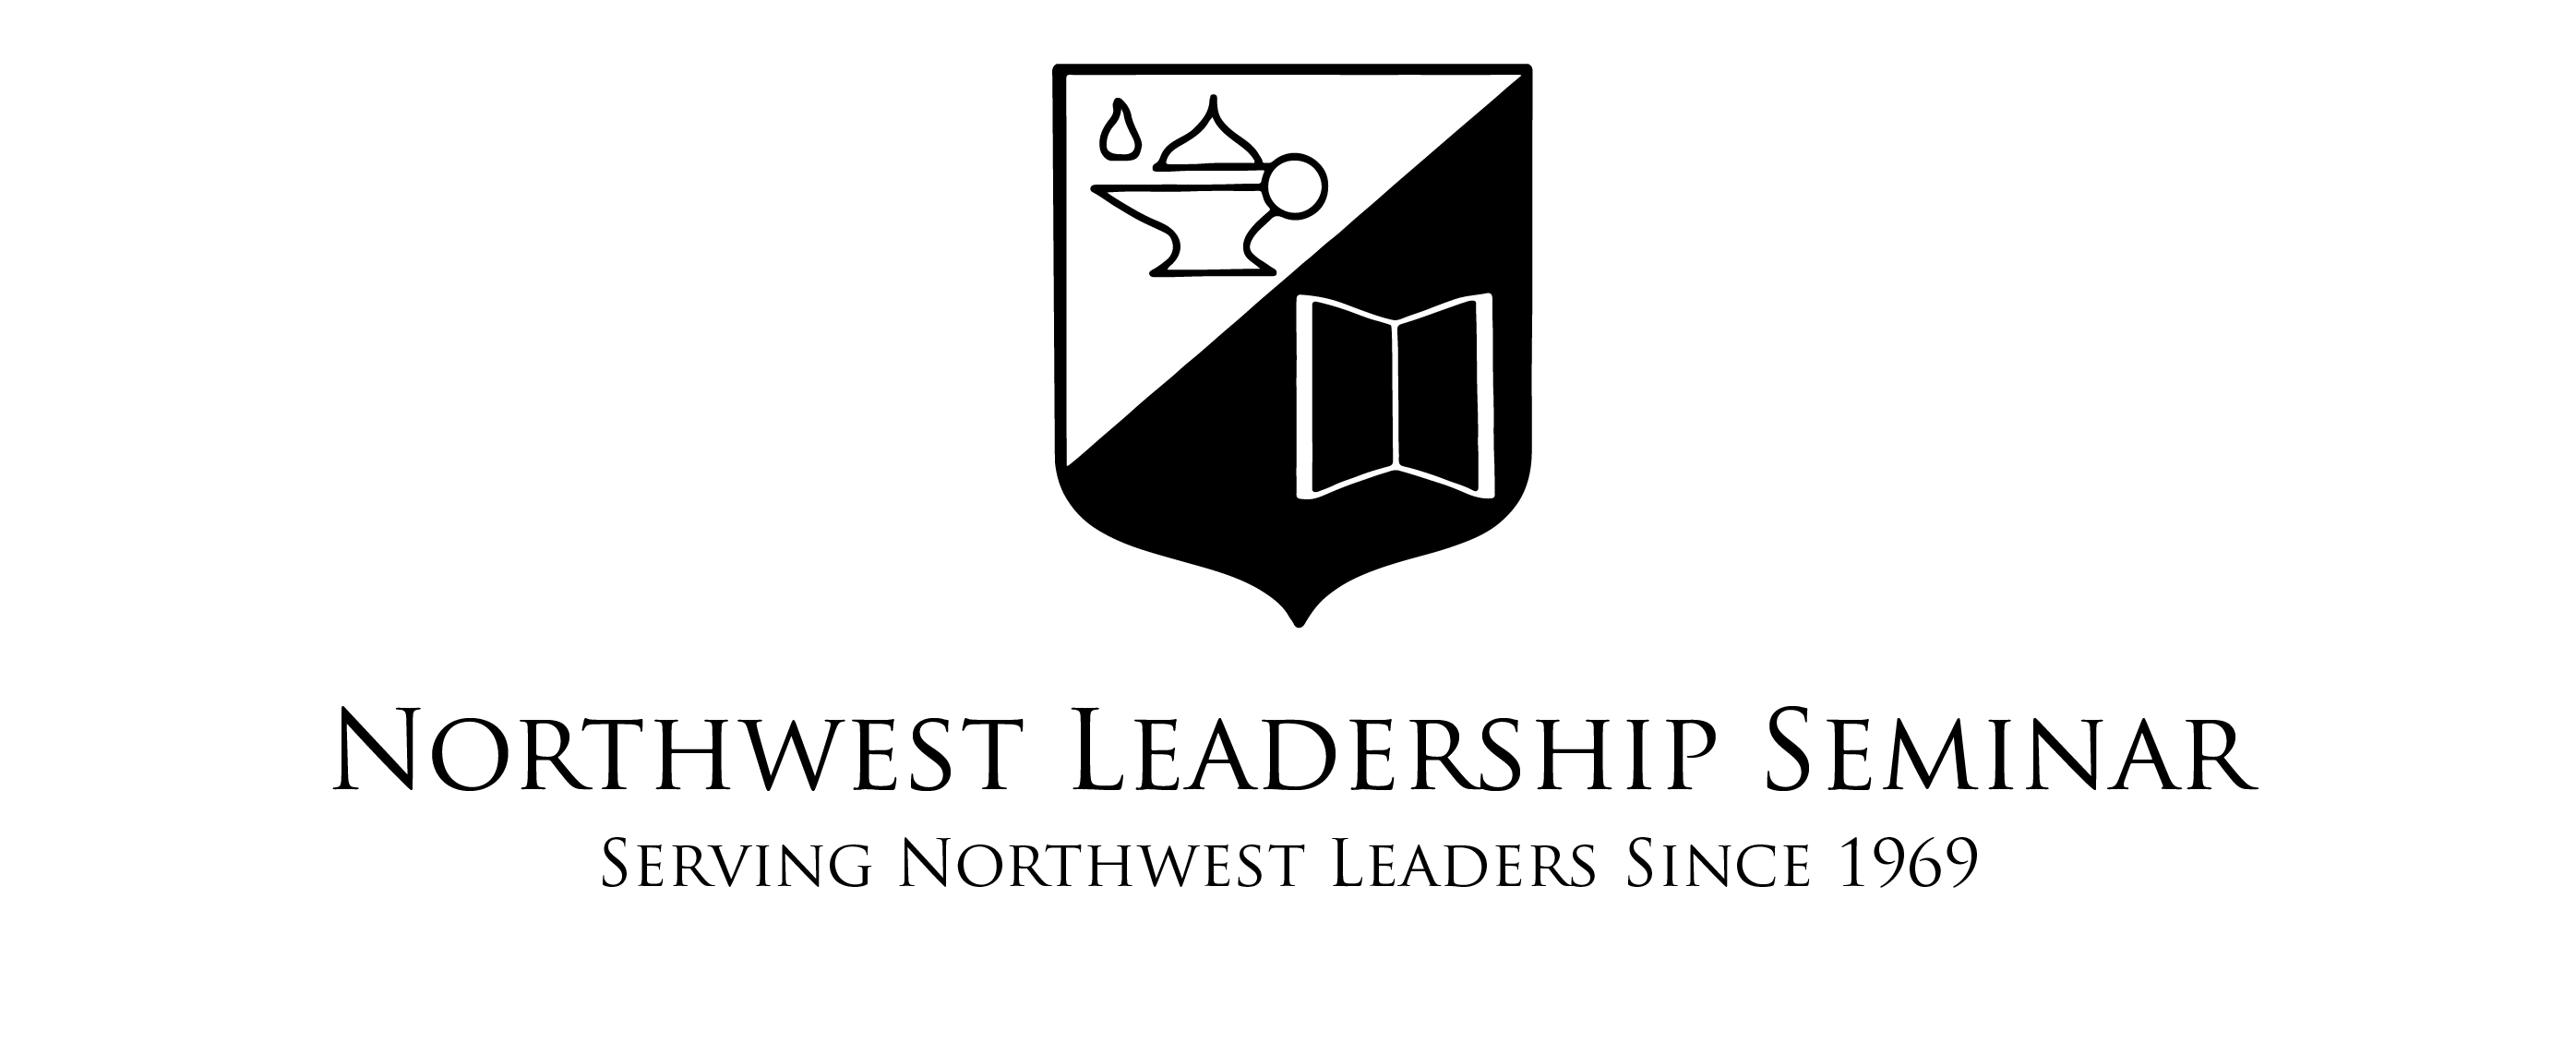 Northwest Leadership Seminar